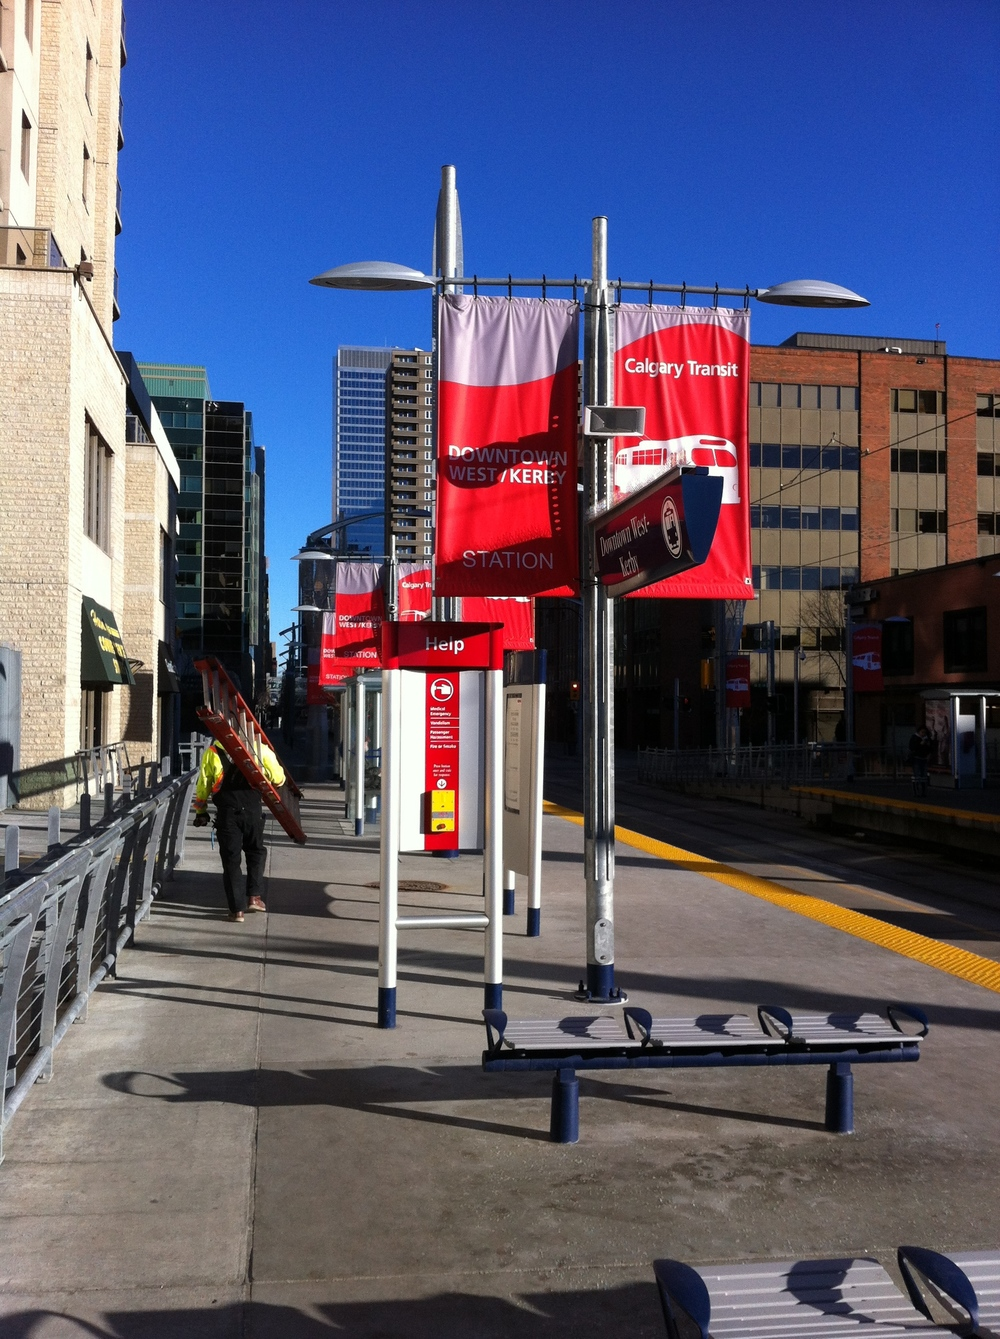 Imagine if these LRT station banners used children's art to create a more unique sense of place and play.